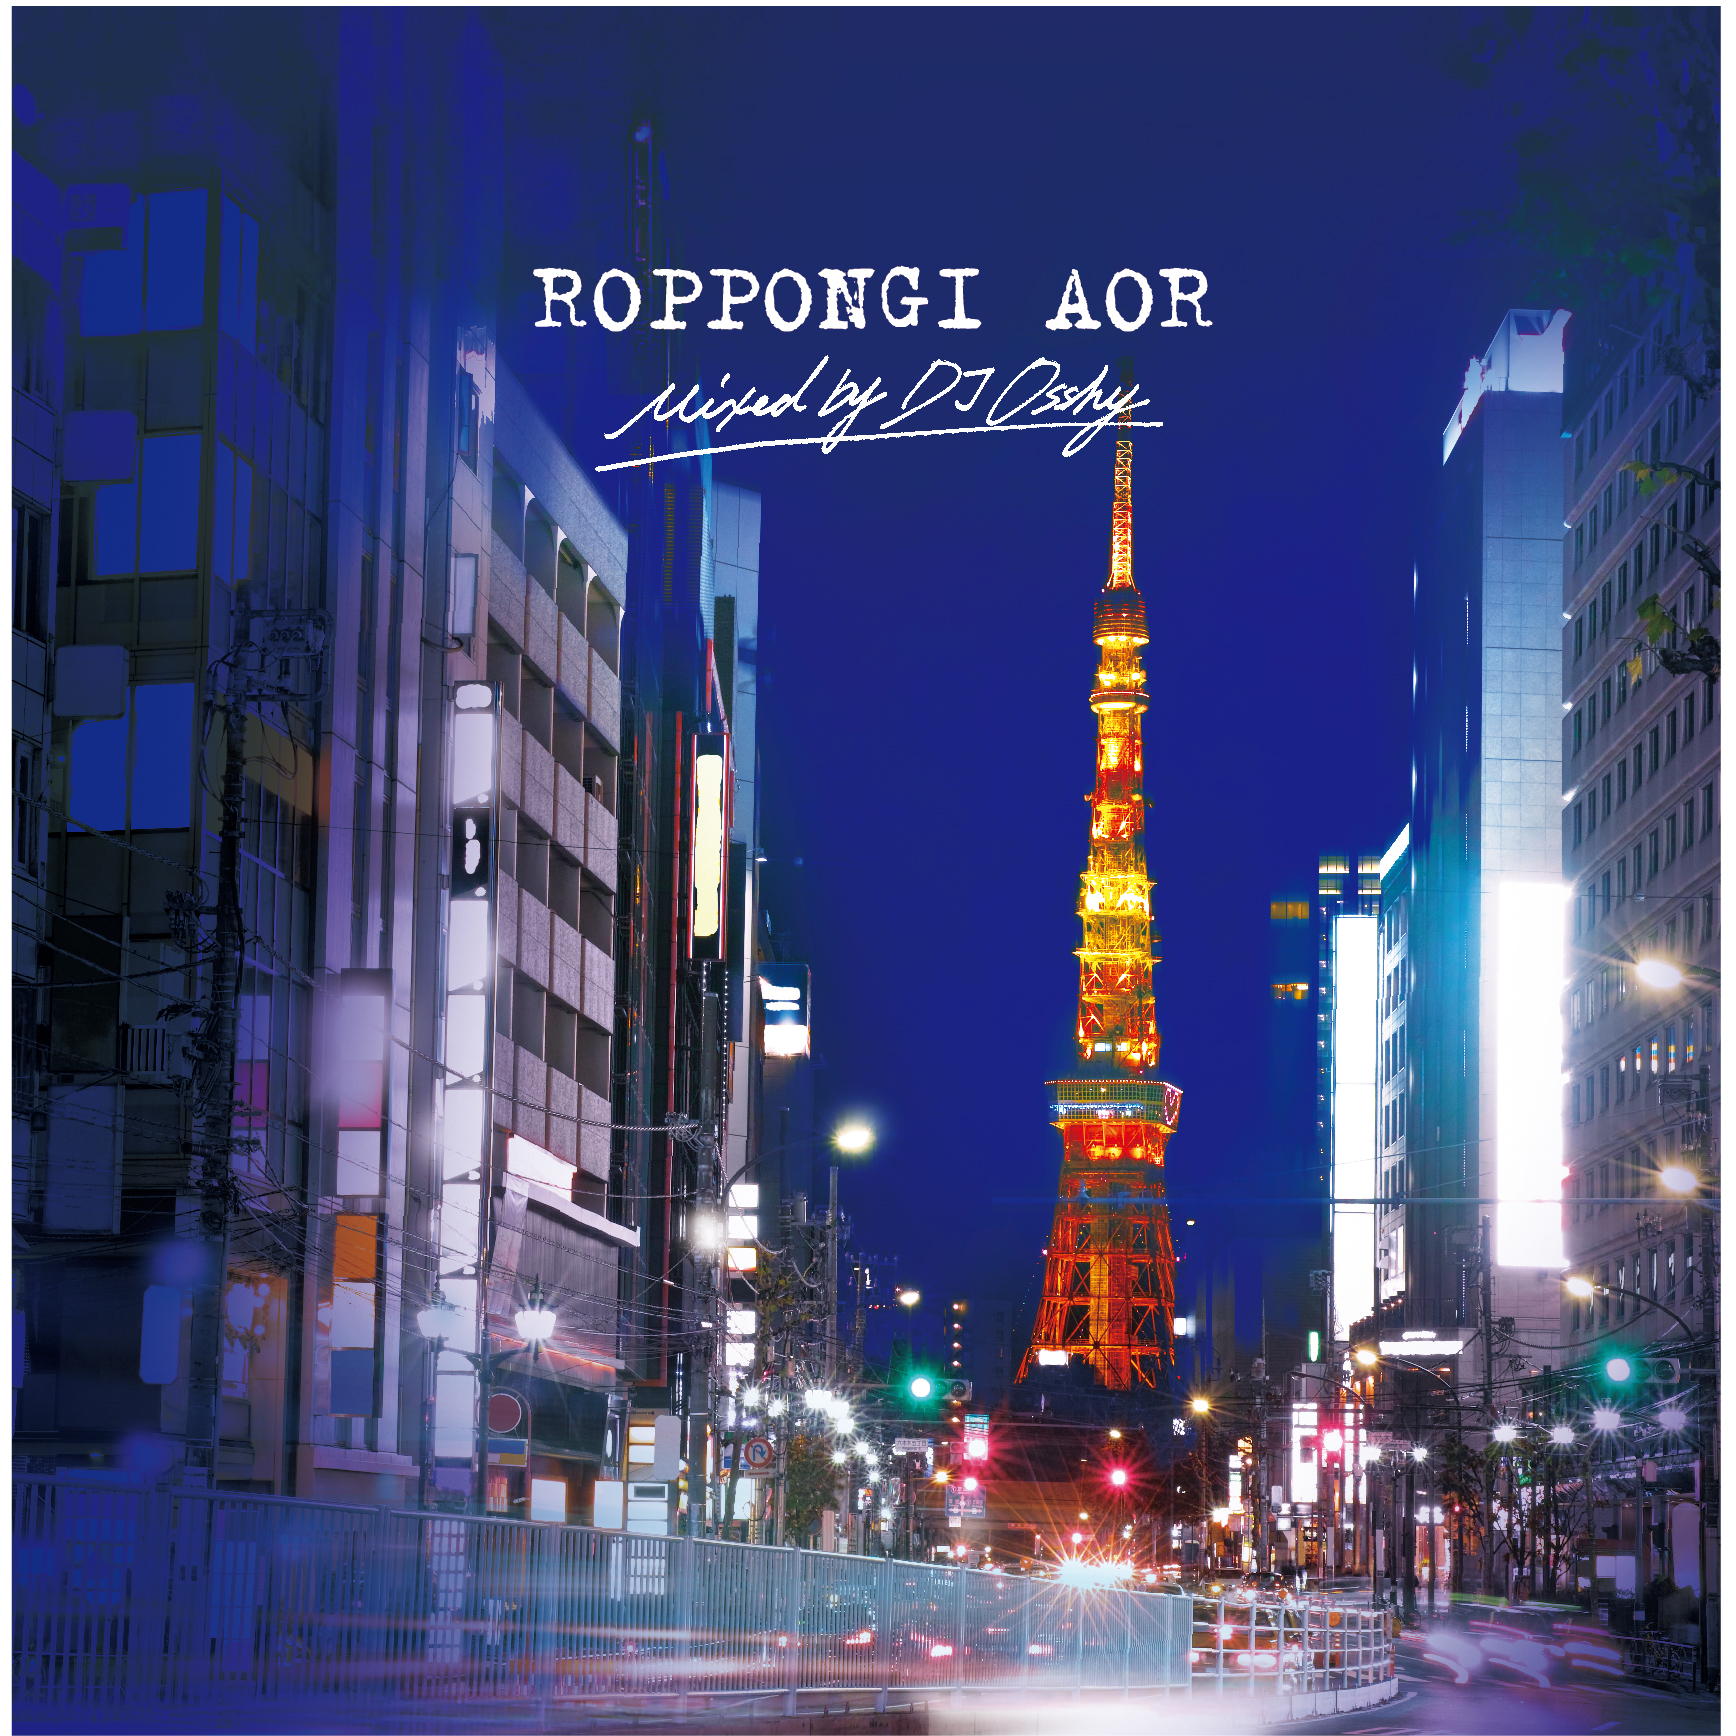 ROPPONGI AOR mixed by DJ OSSHY